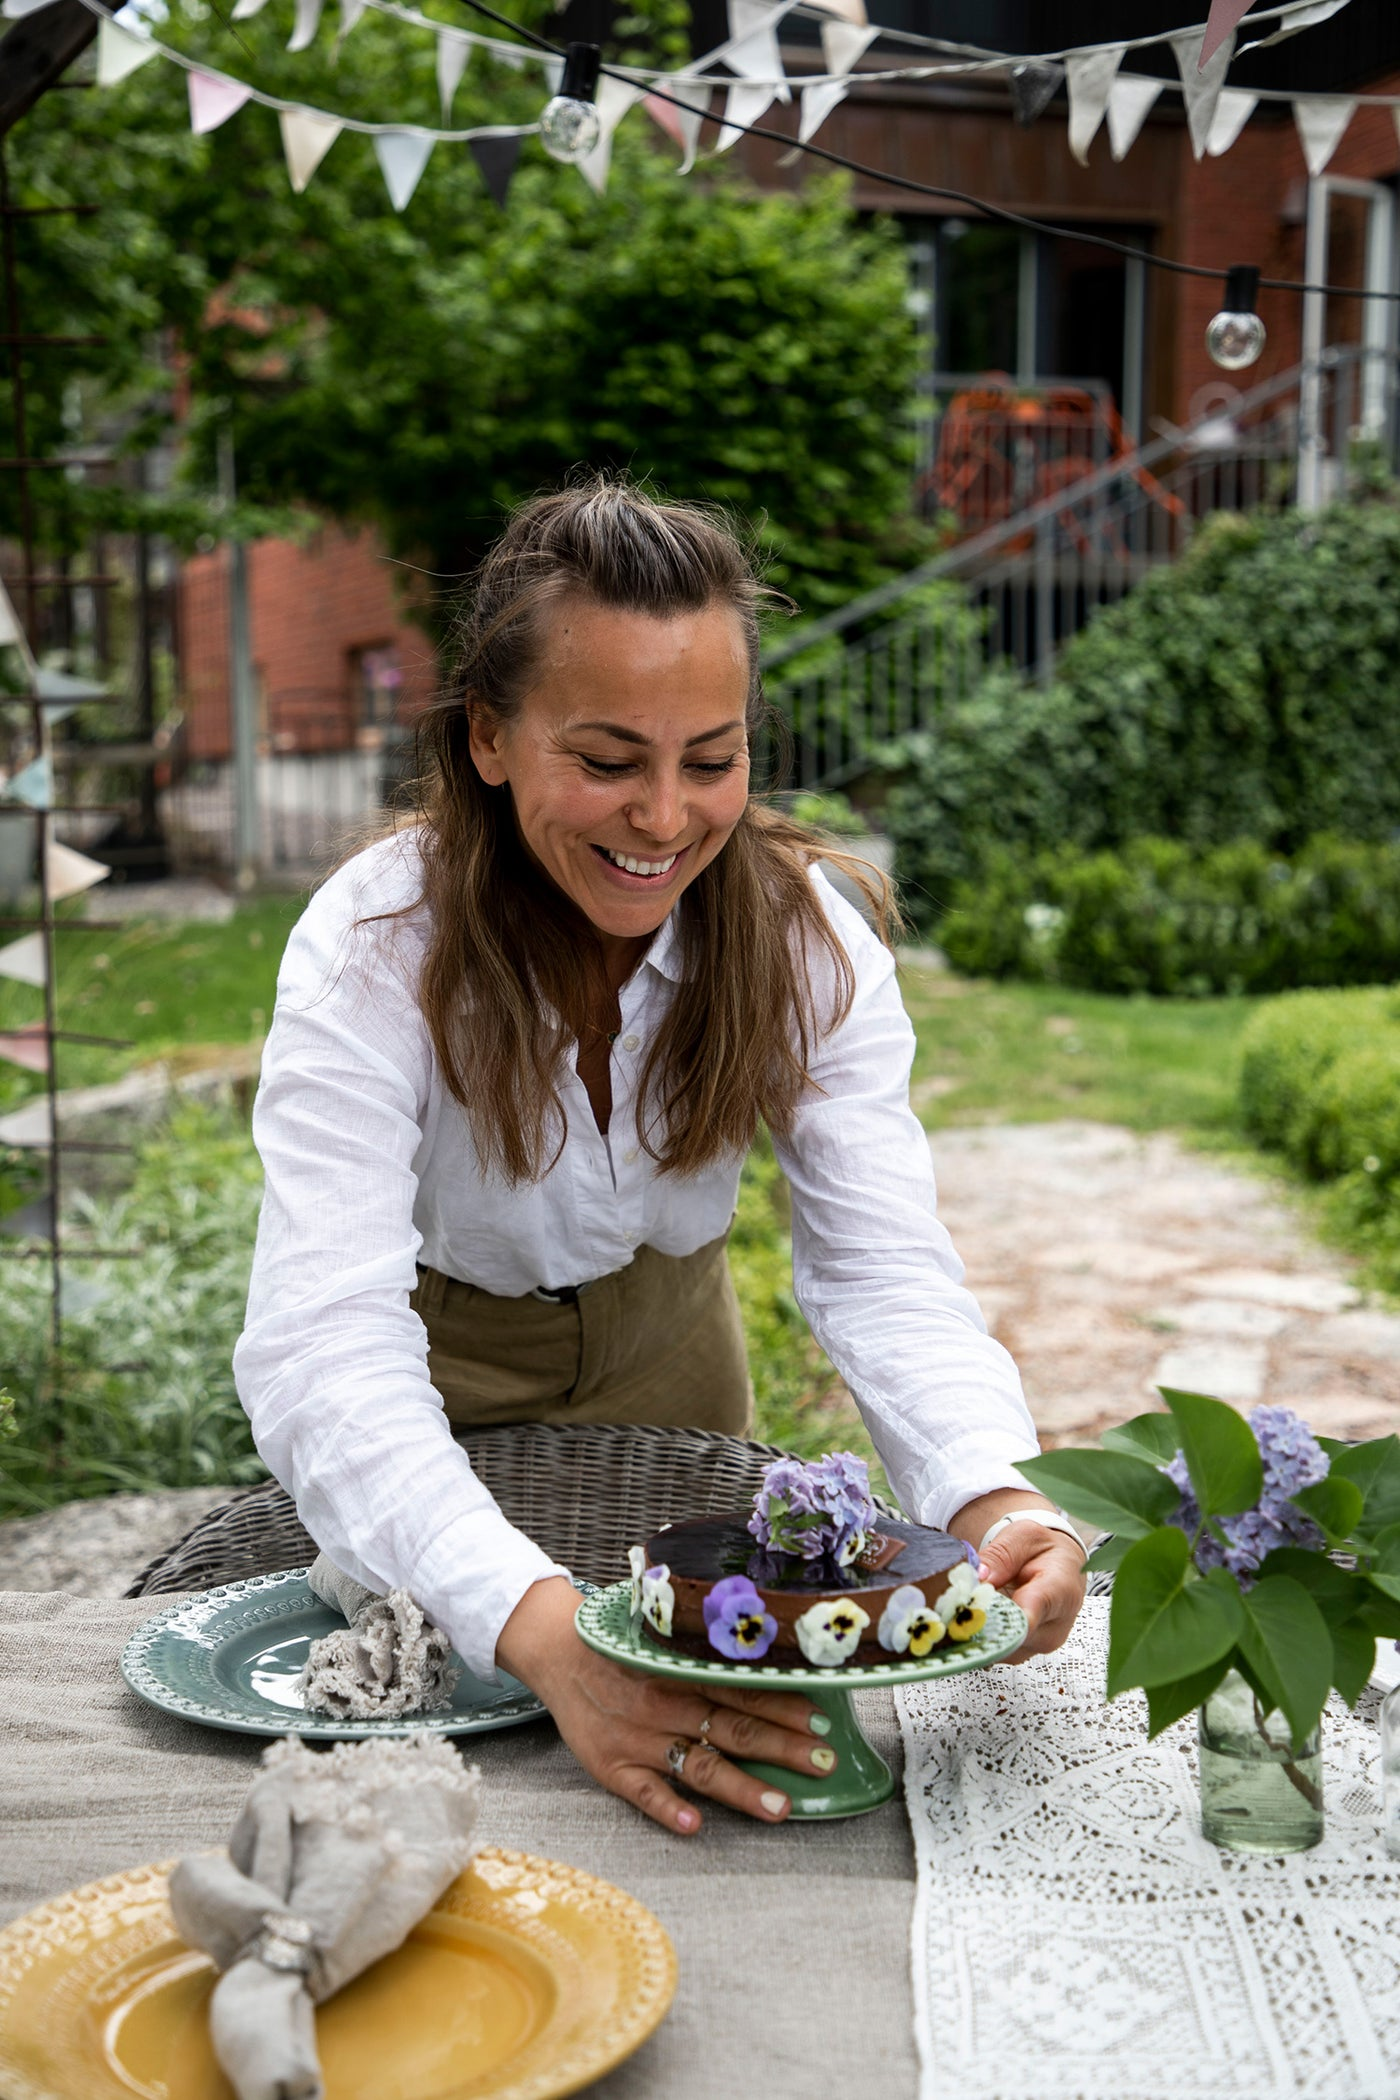 Johanna Hampf loves to set the table – and aspires for people to join her